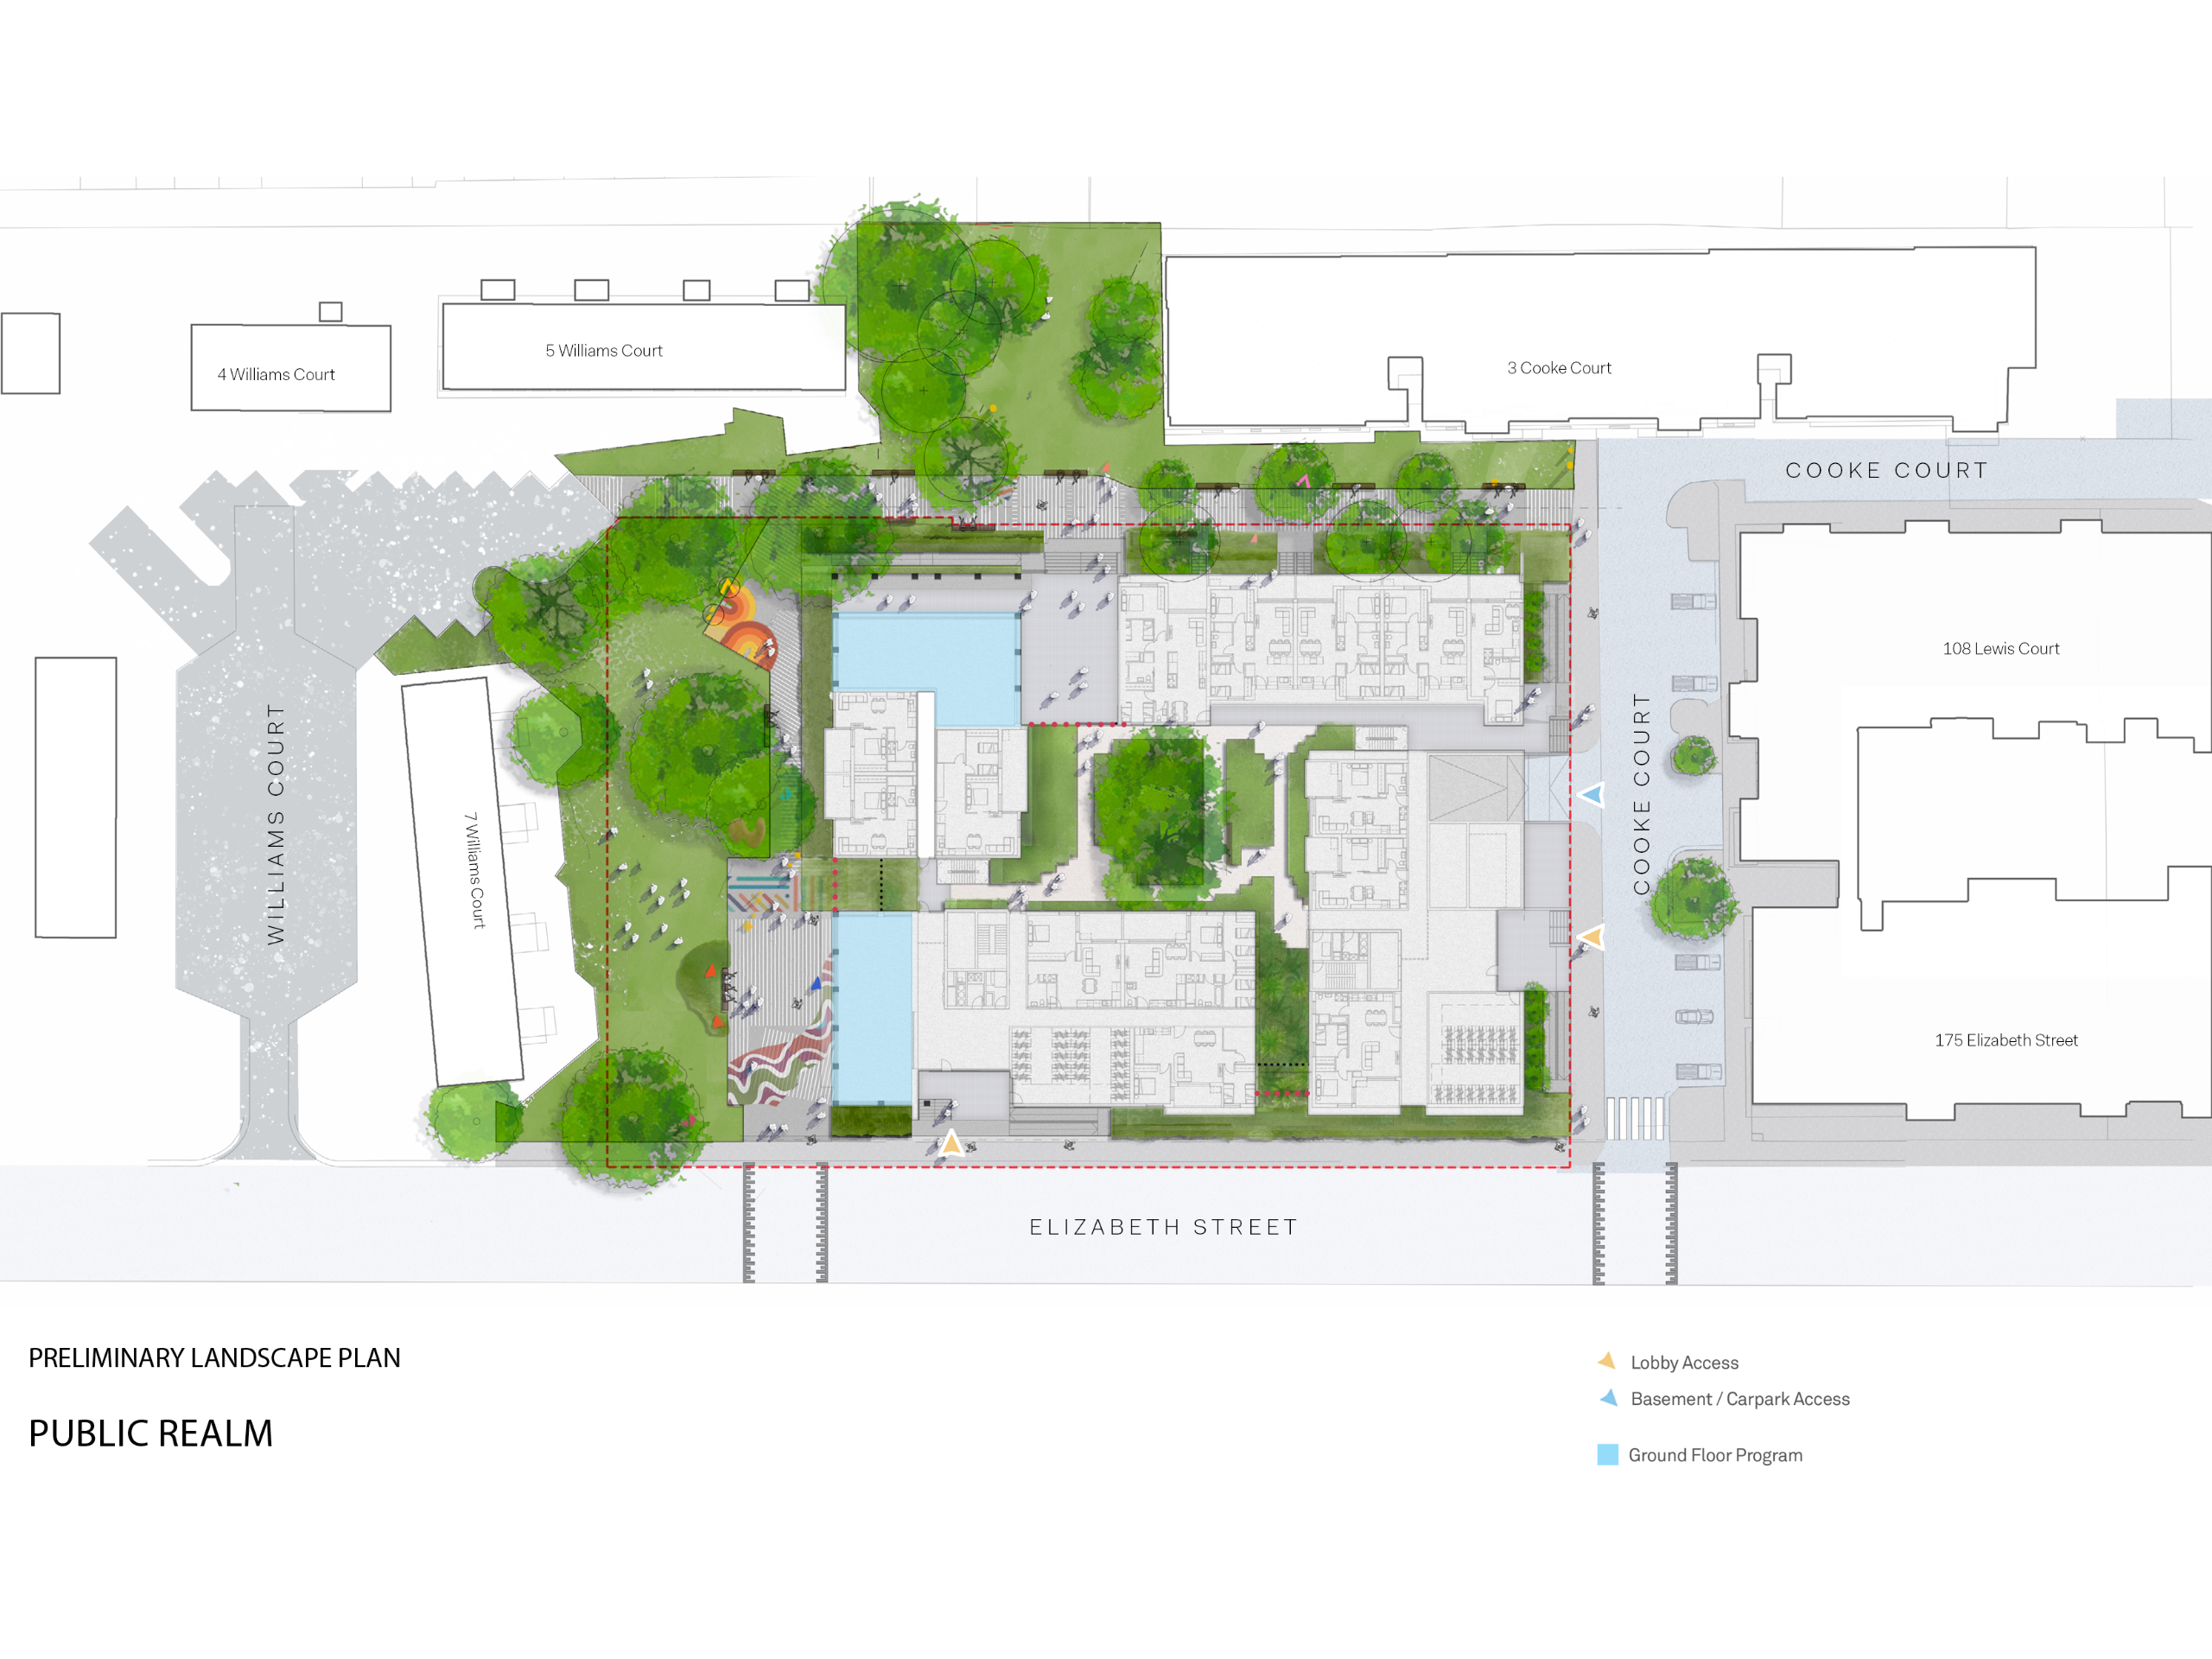 This plan shows the proposed development on the corner of Elizabeth Street and Cooke Court. Existing buildings around the proposed development are: 175 Elizabeth Street and 108 Lewis Court in the east, 3 Cooke Court, 4 and 5 Williams Court in the north and 7 Williams Court in the west. Green space found on the west and north side of the development and in between 5 Williams Court and 3 Cooke Court will be maintained. The existing pedestrian path connects Cooke Court with Williams Court on the north side of the new development will remain with new landscape edge between the new and existing spaces. There's also a private podium garden in between the 4 proposed buildings.  The entries to the Building are well defined on Elizabeth Street and on Cooke Court opposite 175 Elizabeth Street, each with secure bicycle stores conveniently located with easy access via stairs or ramp from the street. Residents may also access the building via the private podium garden from the North pedestrian path between Cooke Court and Williams Court.